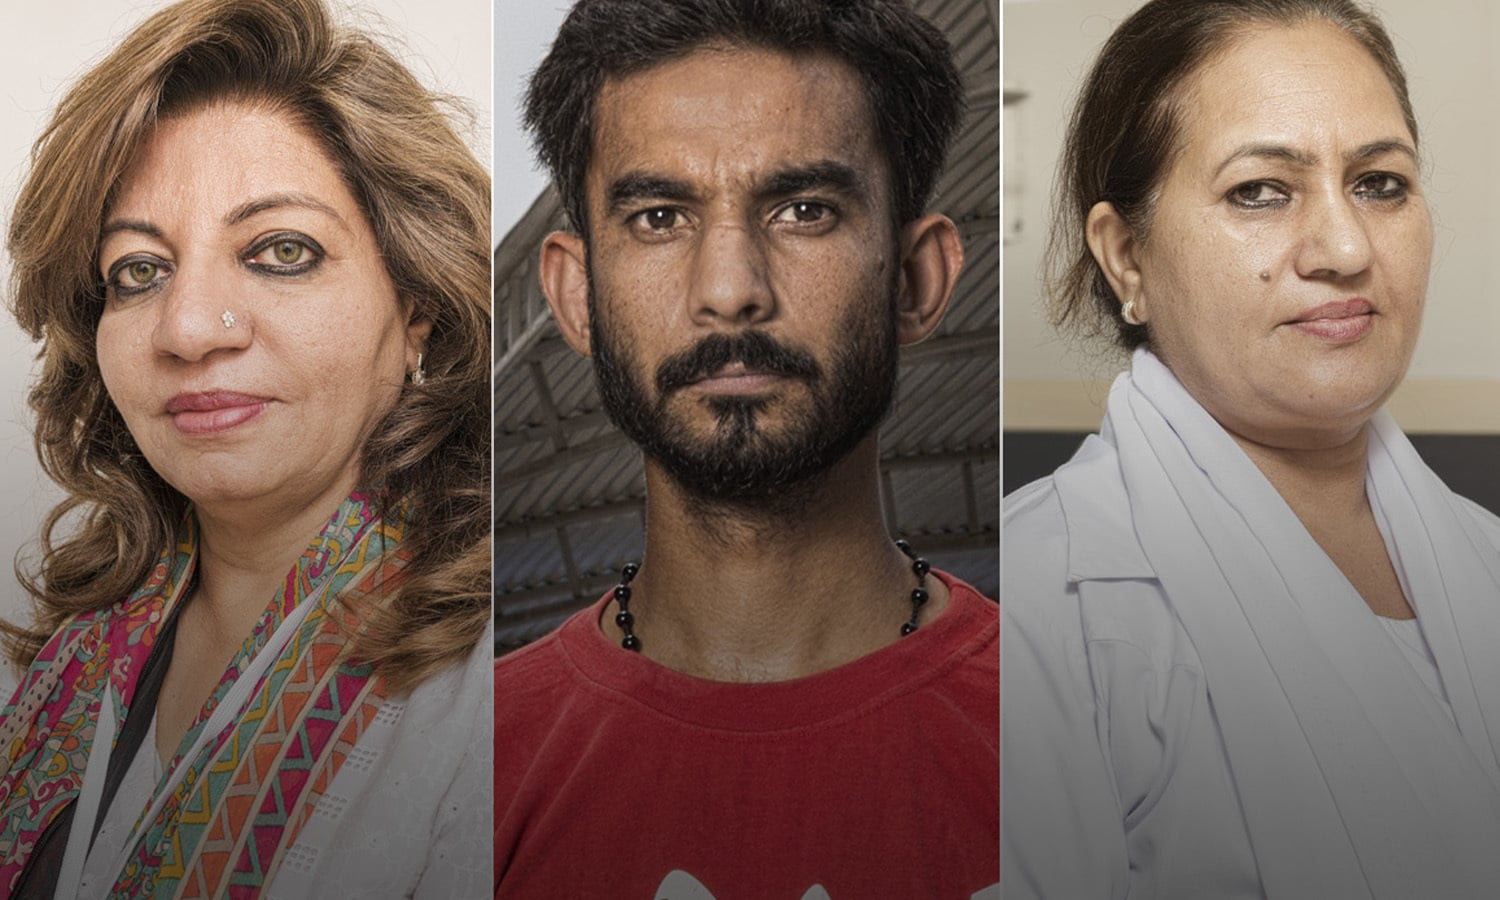 <h1>In the line of duty</h1> <h2><em>Healthcare workers are Karachi's unsung heroes.</em></h2> <h4>Images and information courtesy ICRC</h4>